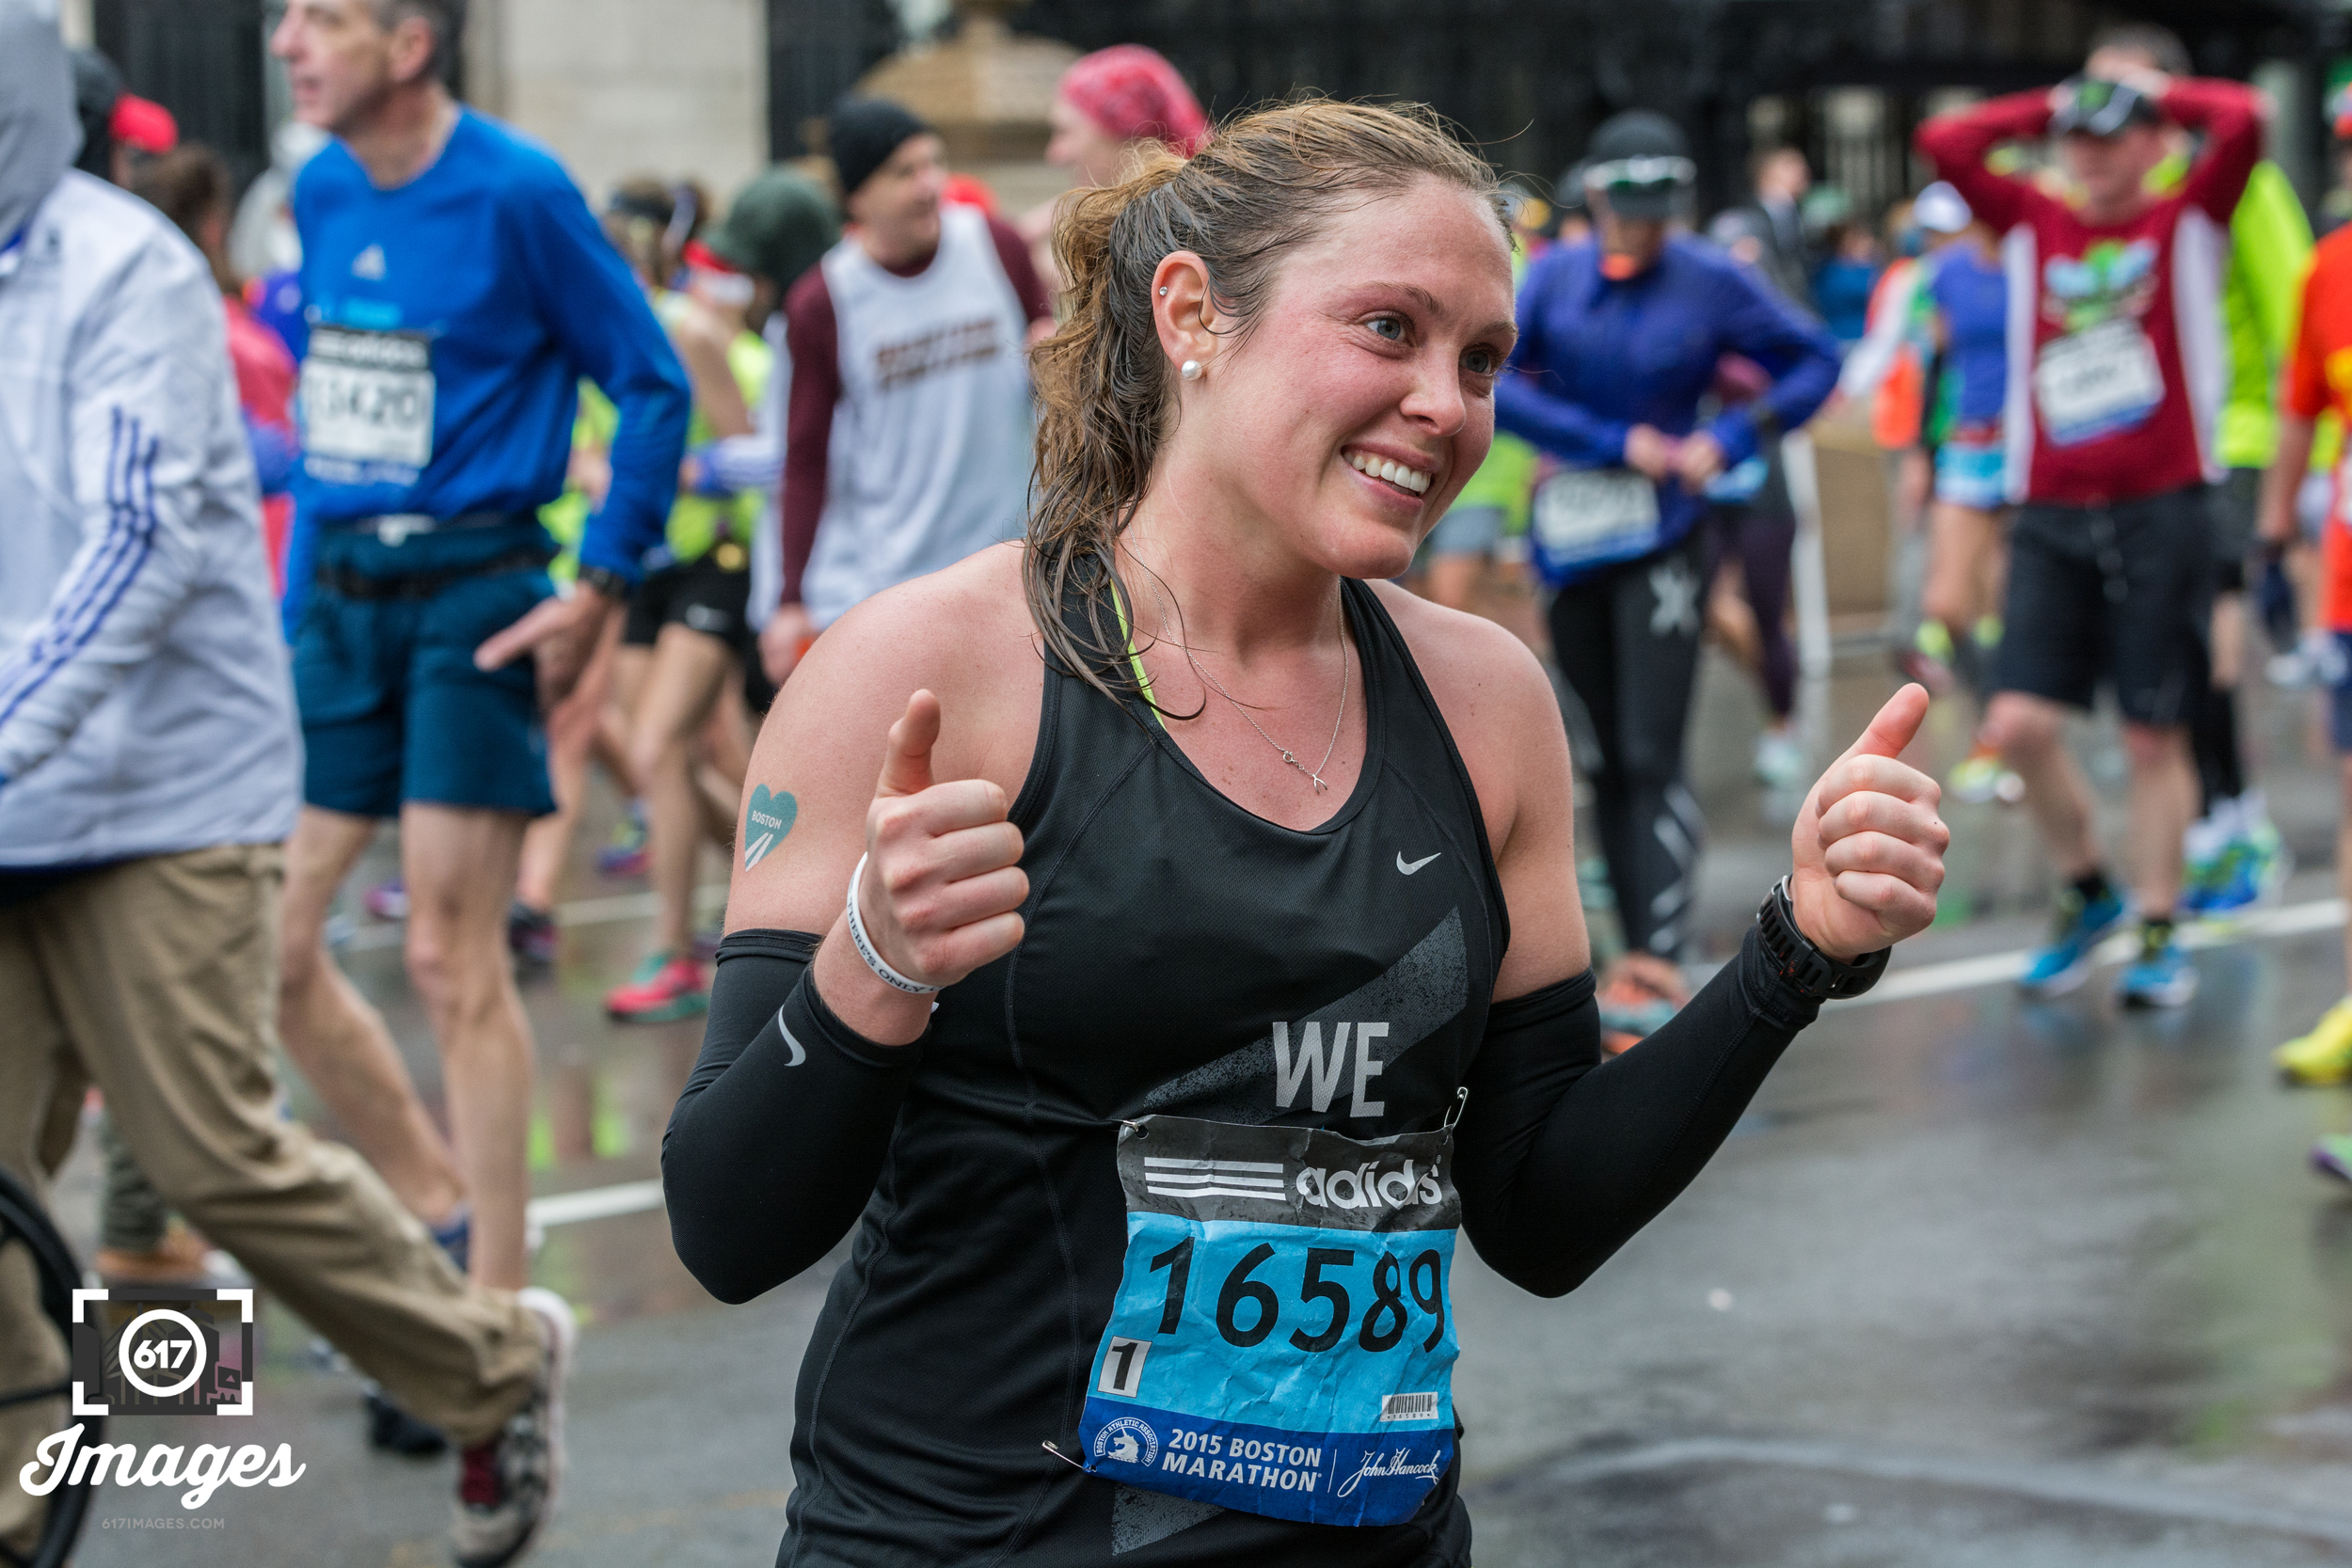 Thumbs up on finishing the marathon.